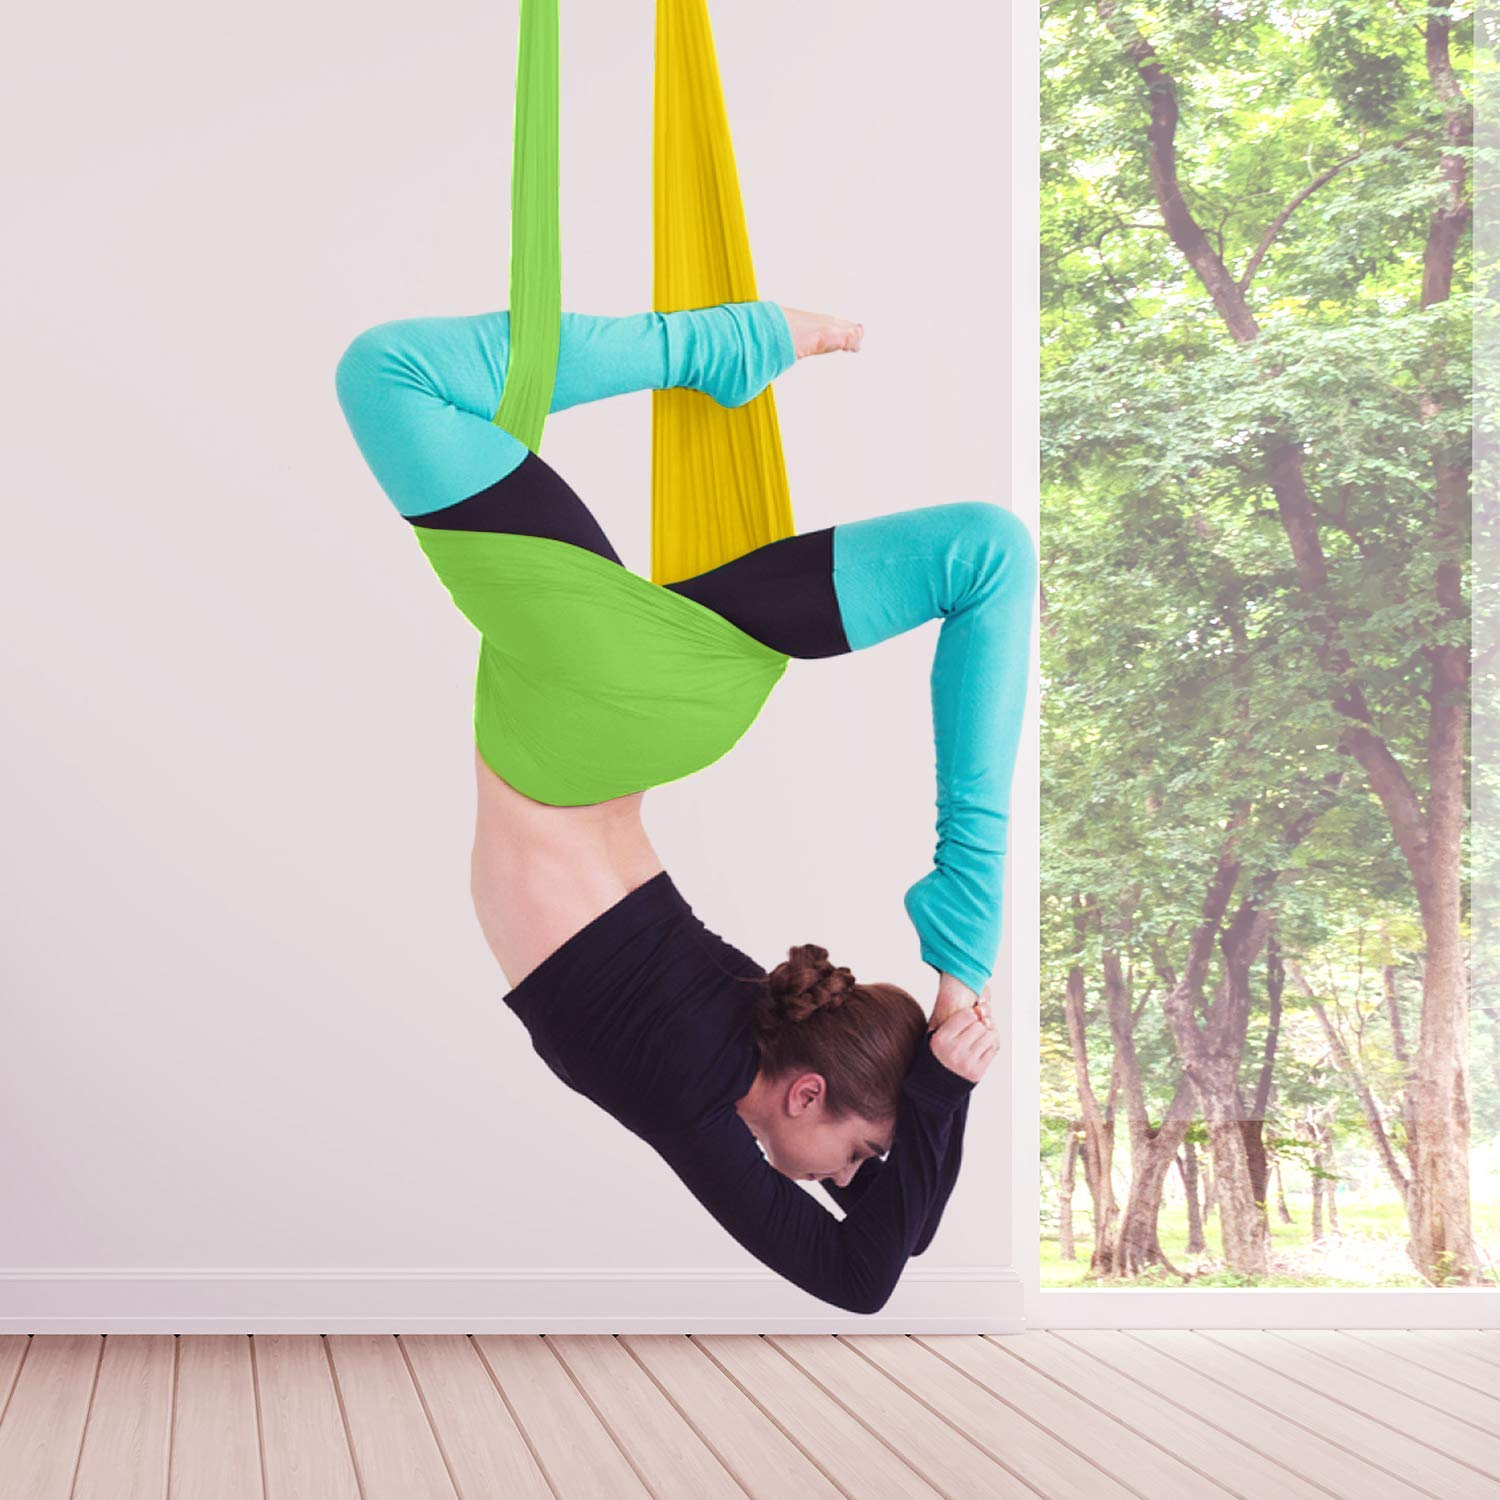 7 Aerial Yoga Hammock Poses Their Benefits To The Human Body Hammock Town